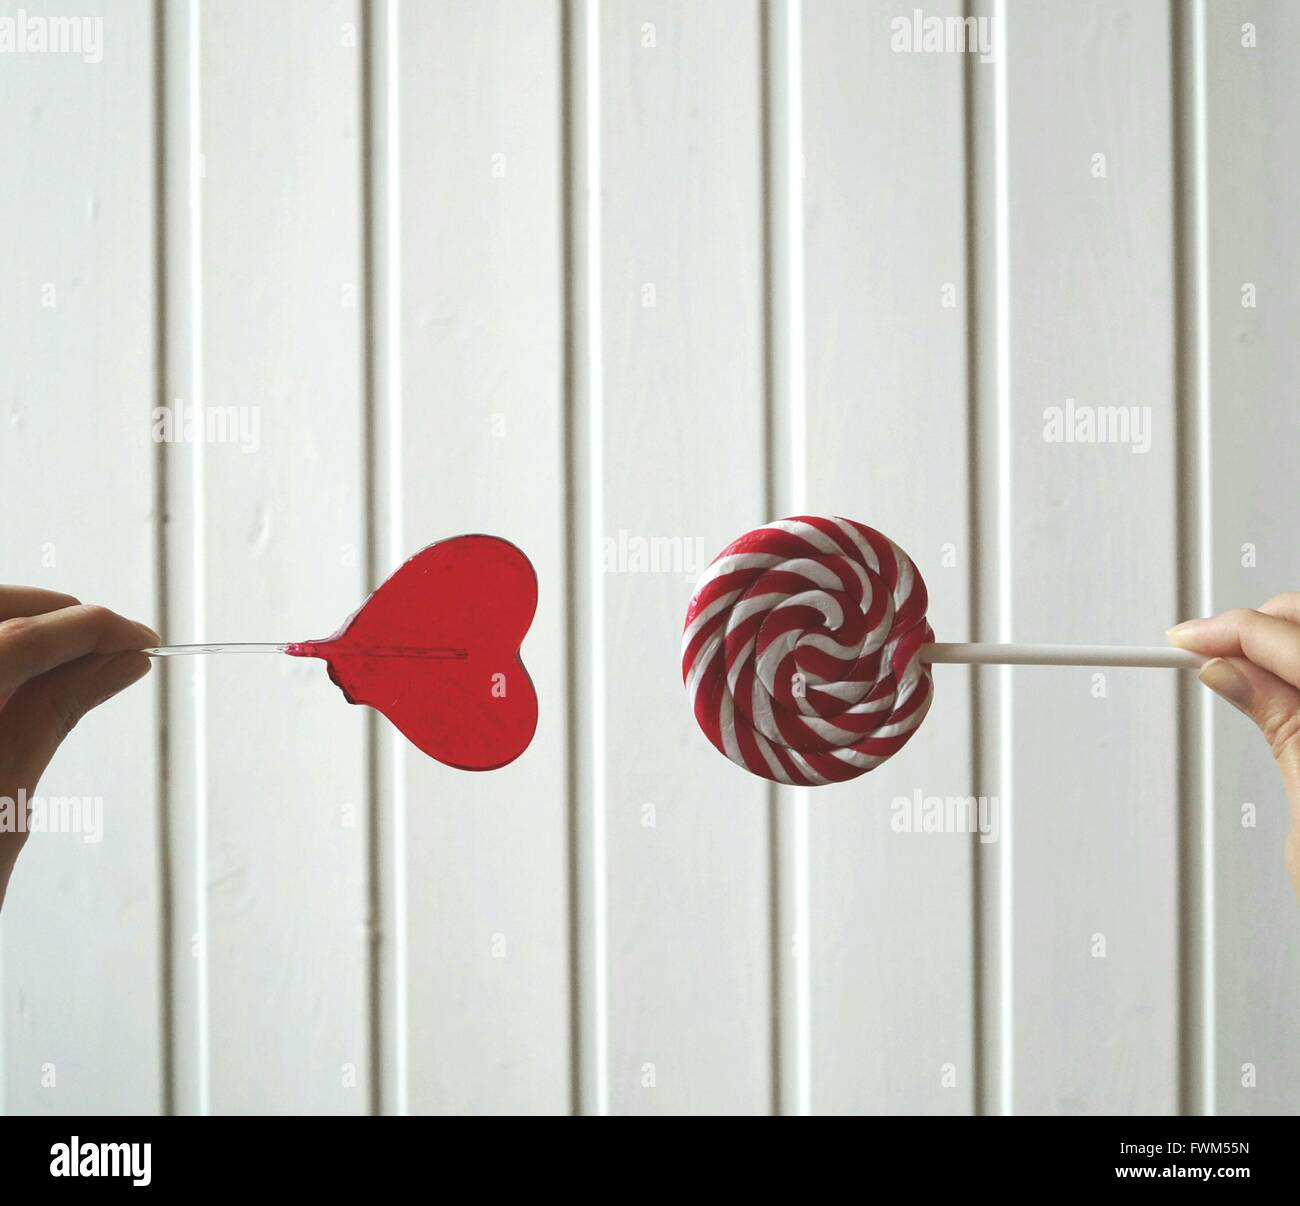 Cropped Woman Hands Holding Candies Against White Wall - Stock Image